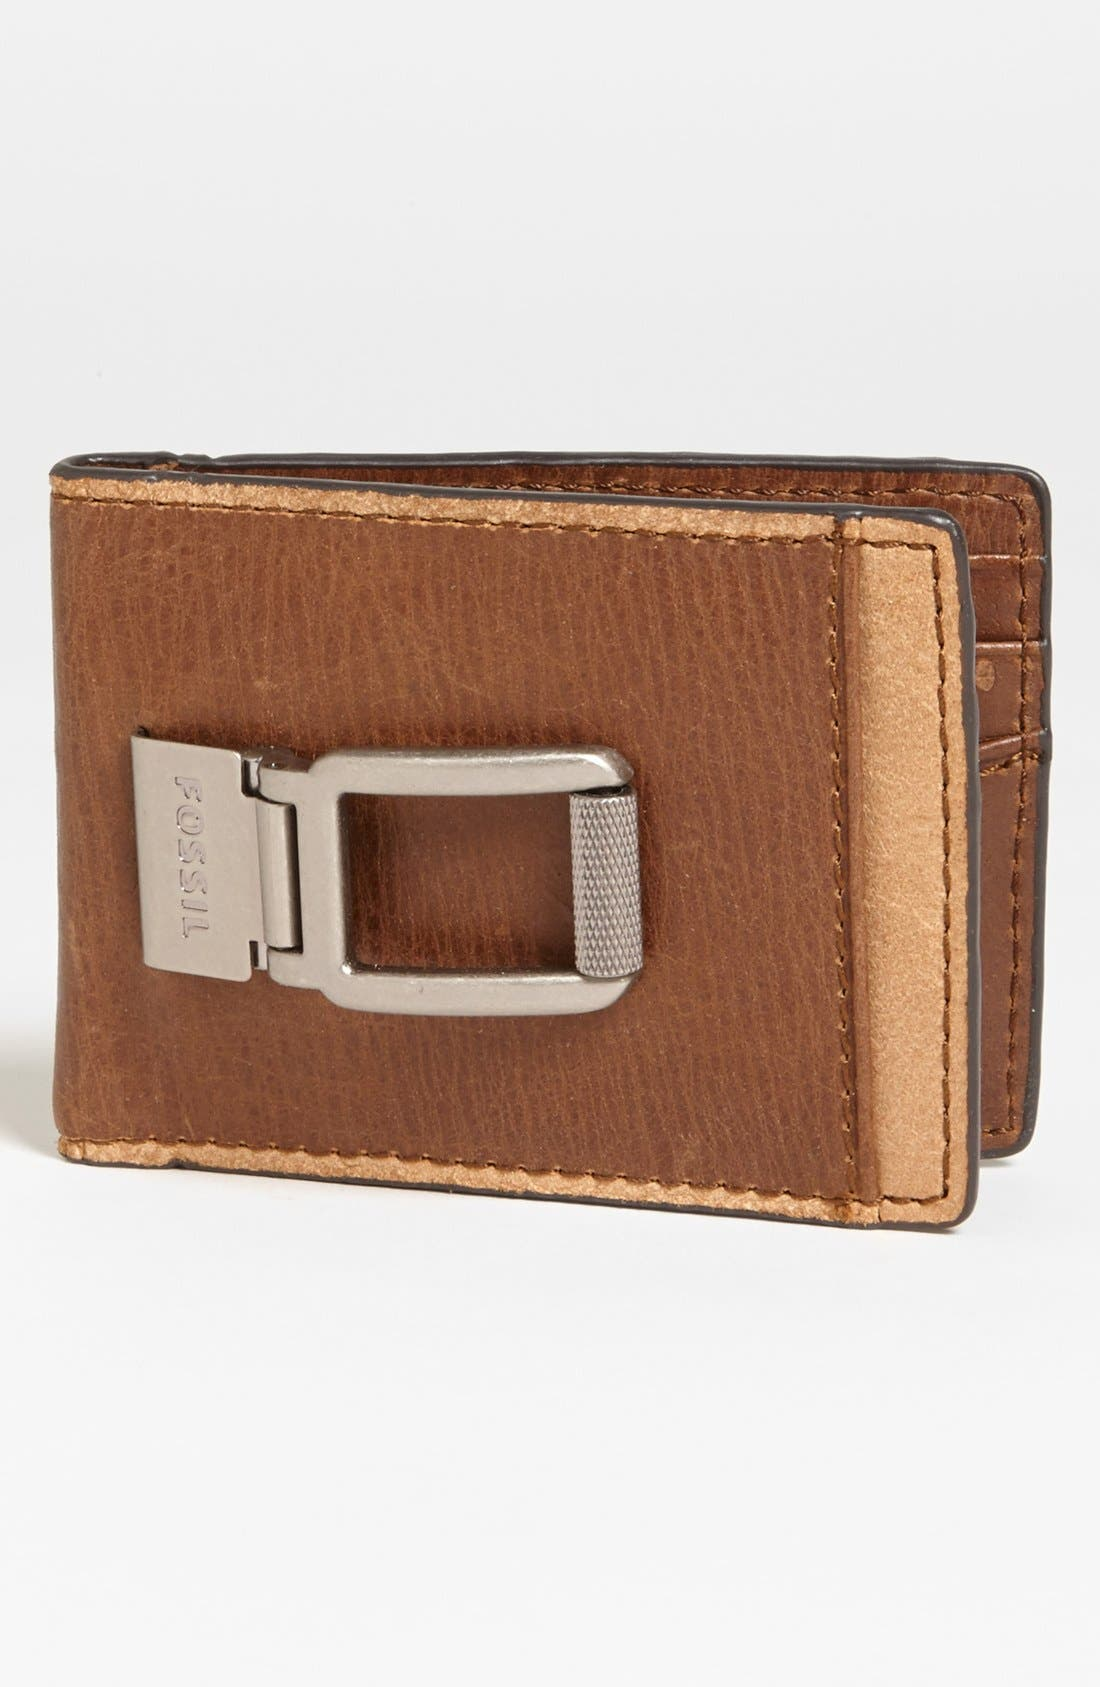 Main Image - Fossil 'Nolan' Money Clip Wallet